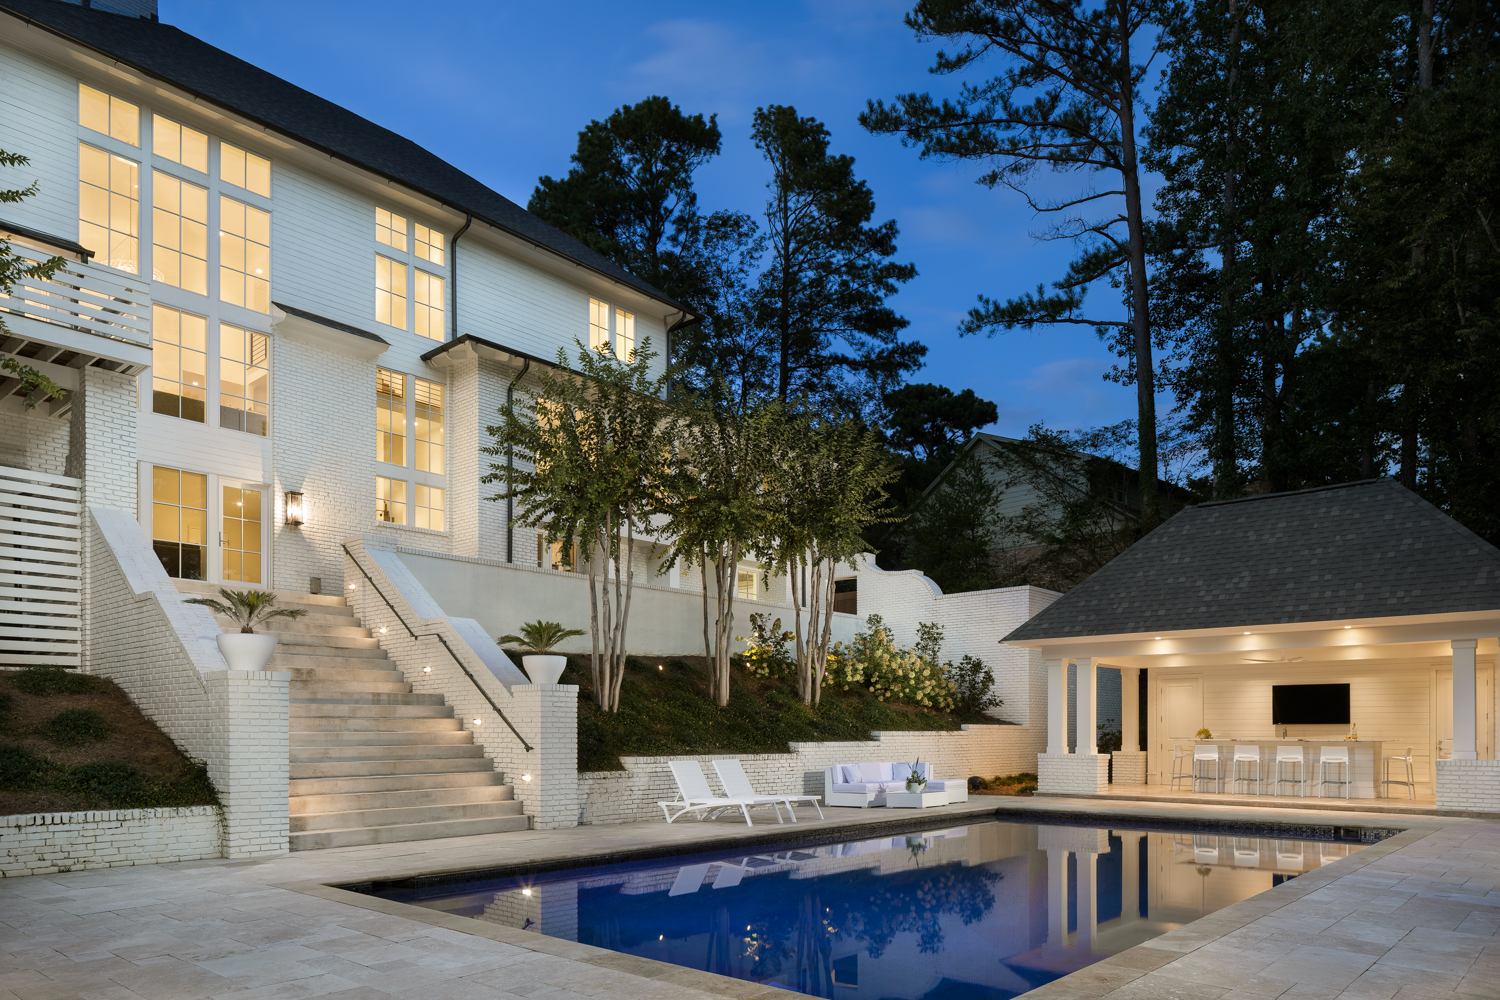 Twilight exterior of the rear and pool. This is one of the most extensive remodel projects I've ever seen. Hard to comprehend the before with the after!